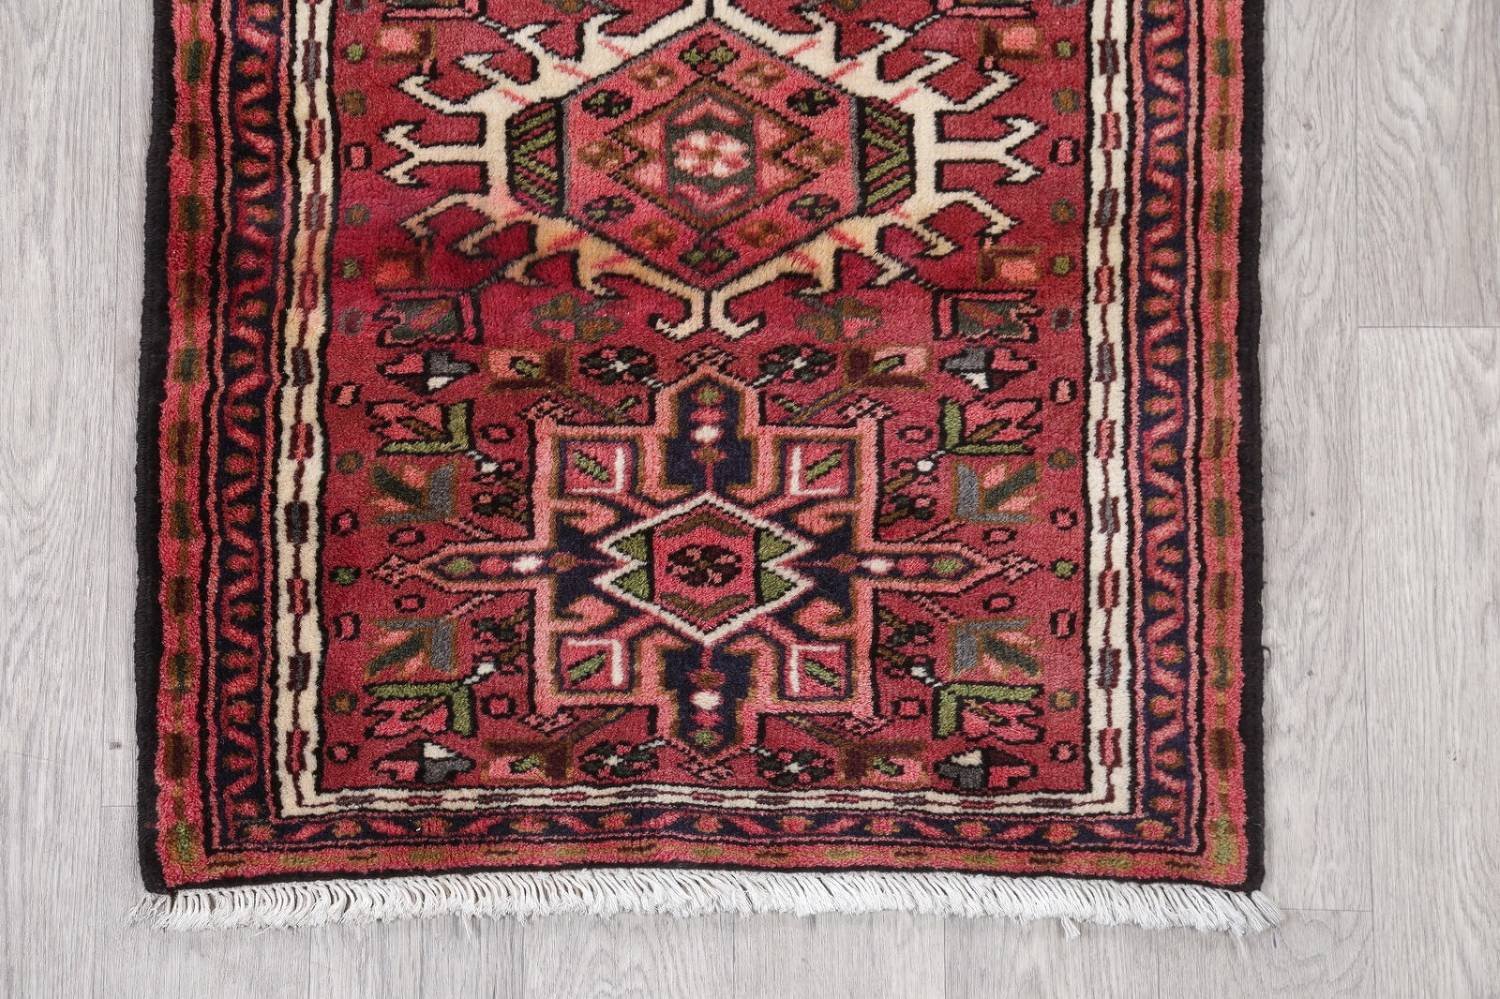 Geometric Red Gharajeh Persian Hand-Knotted Runner Rug Wool 3x10 image 5